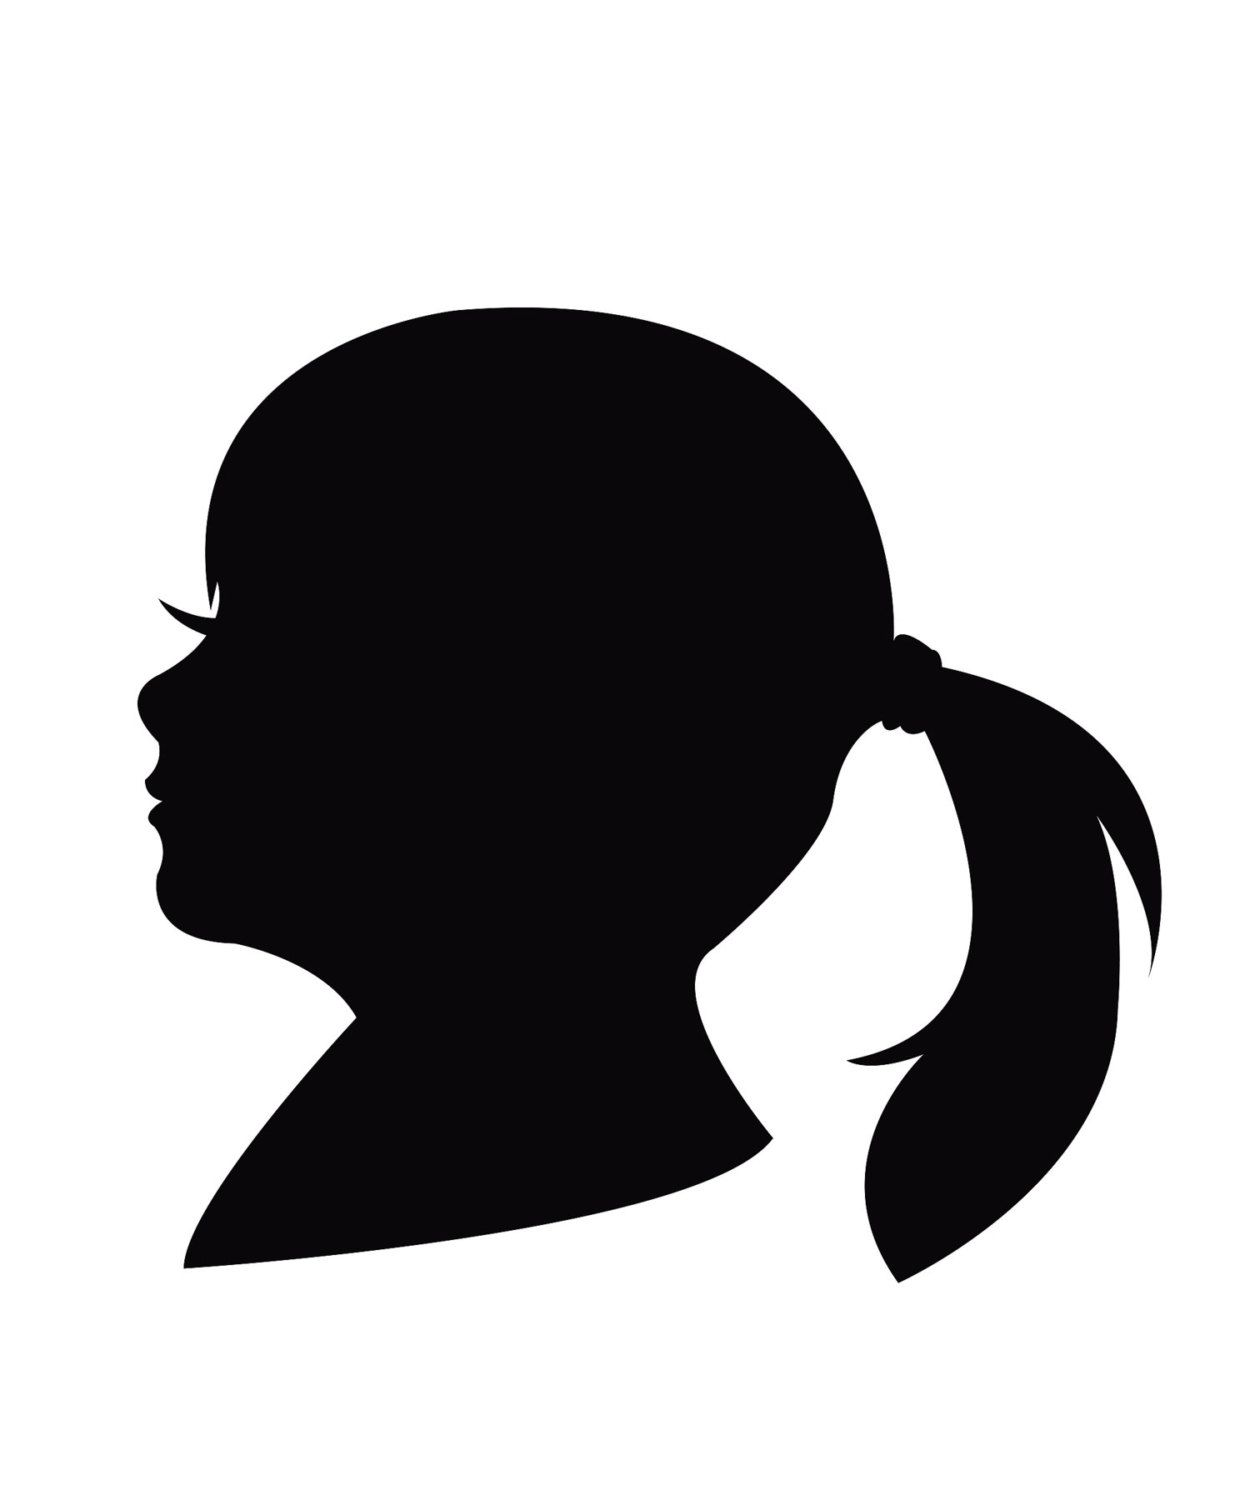 Woman Hair style Silhouette Royalty Free Vector Image  Face Profile Silhouette Blowing